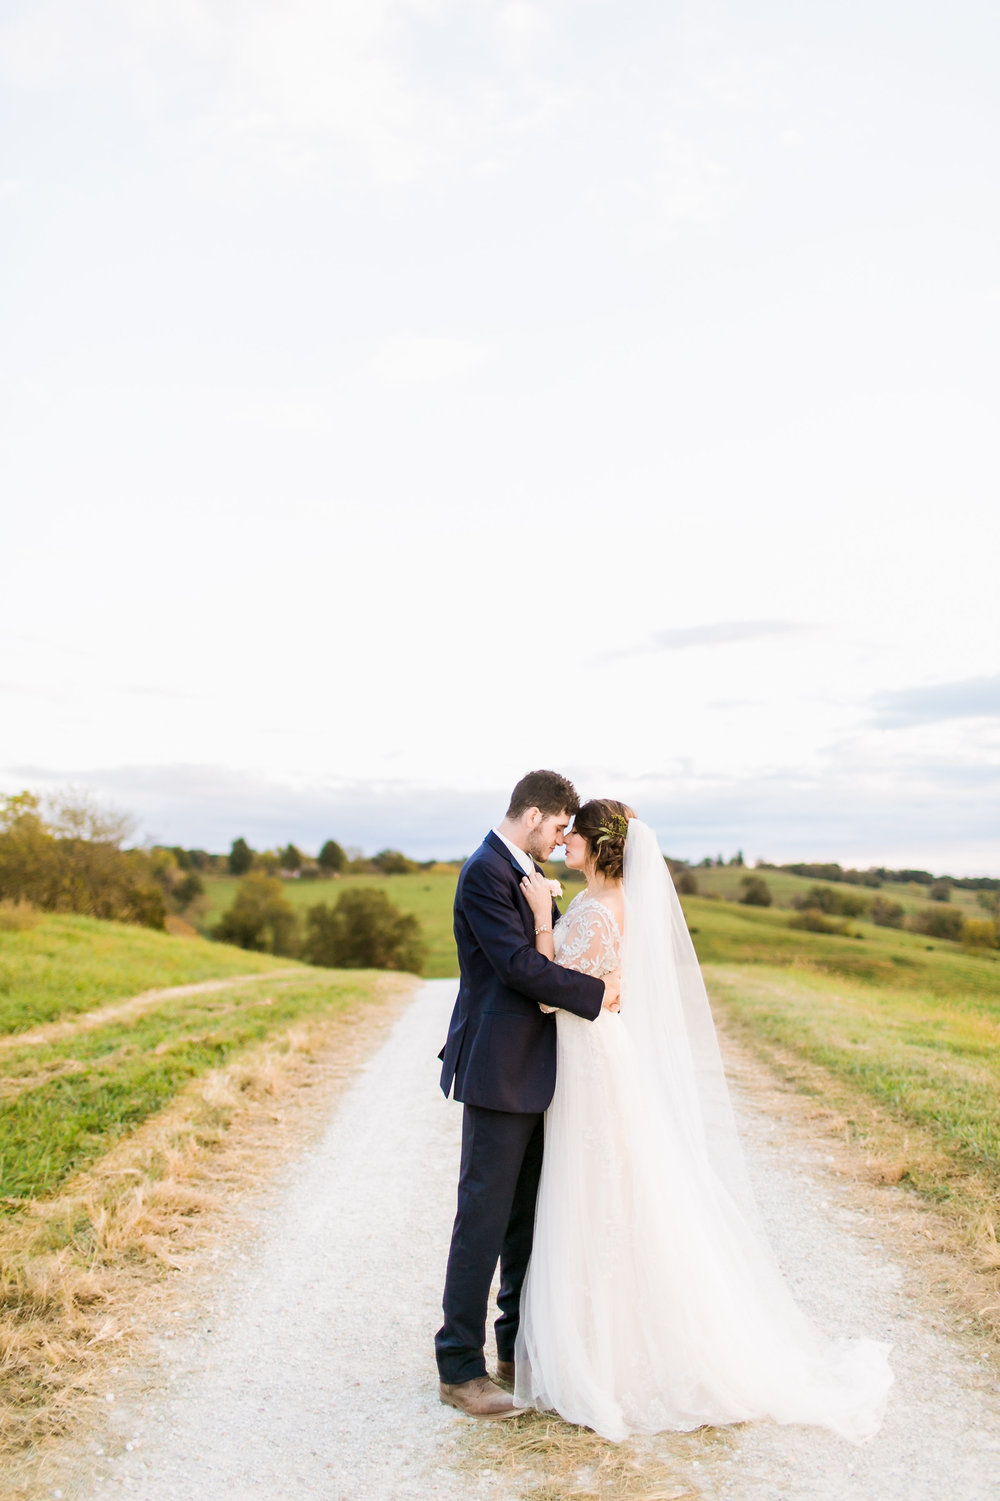 MissouriRusticWedding_StLouisWeddingPhotographer_AliciaDan_CatherineRhodesPhotography-4030-Edit.jpg